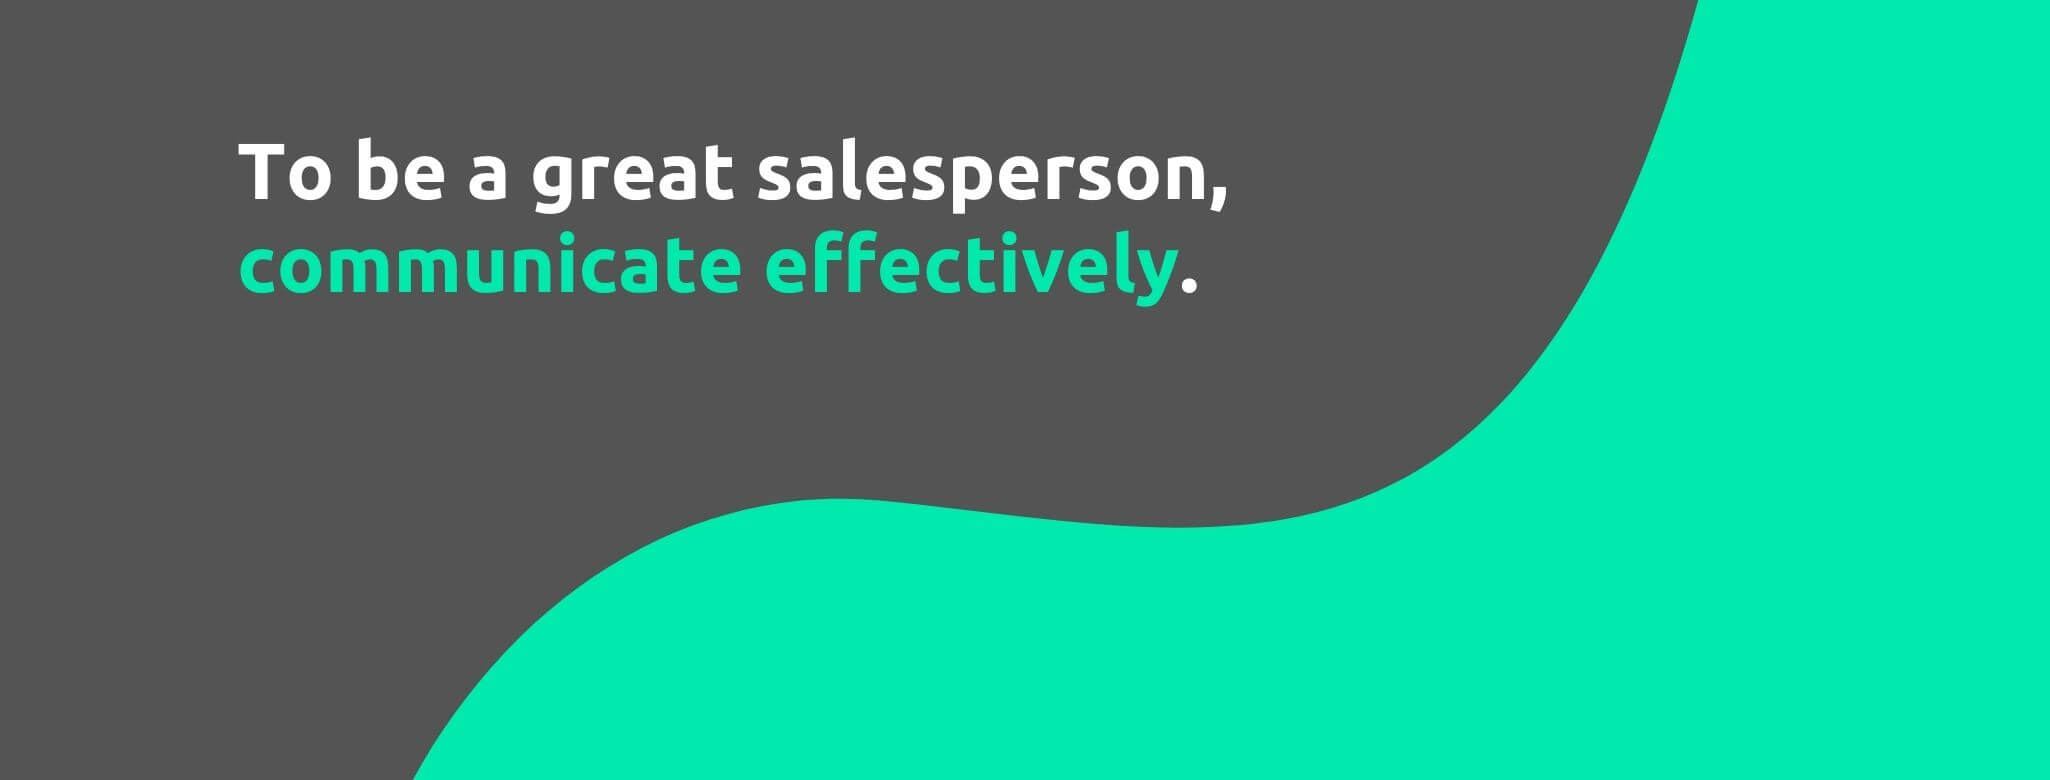 Communicate Effectively - 19 Ways to Conquer Fear of Rejection in Sales - Replyco Helpdesk Software for eCommerce